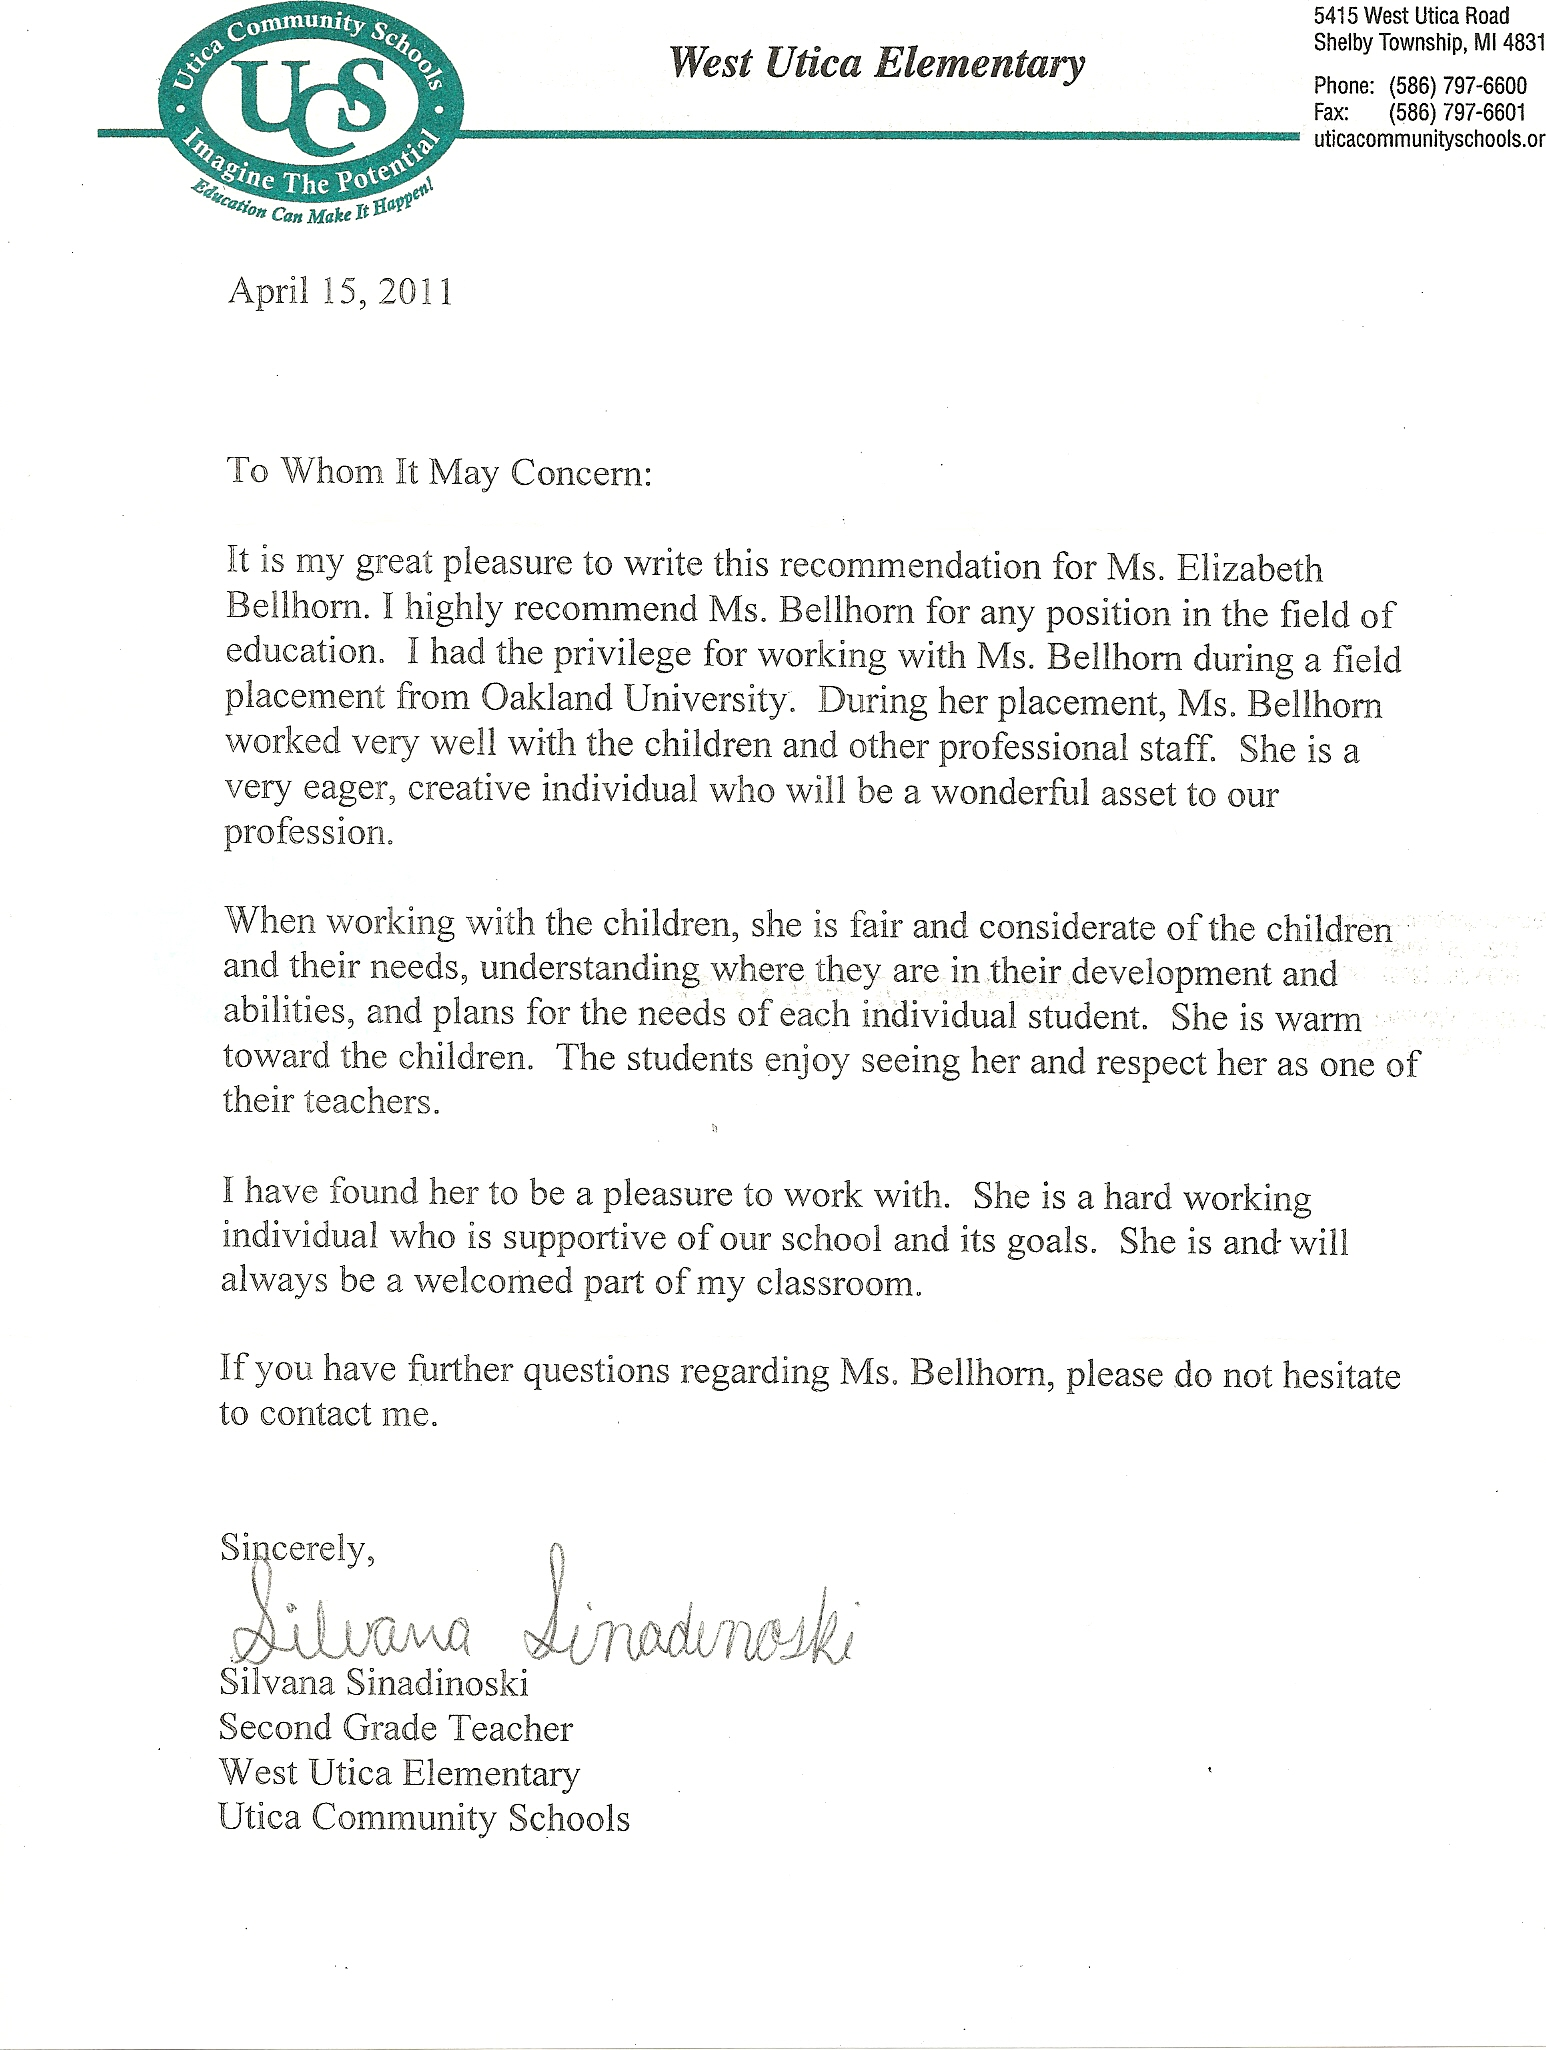 Letter Of Recommendation For Elementary Student Teacher From